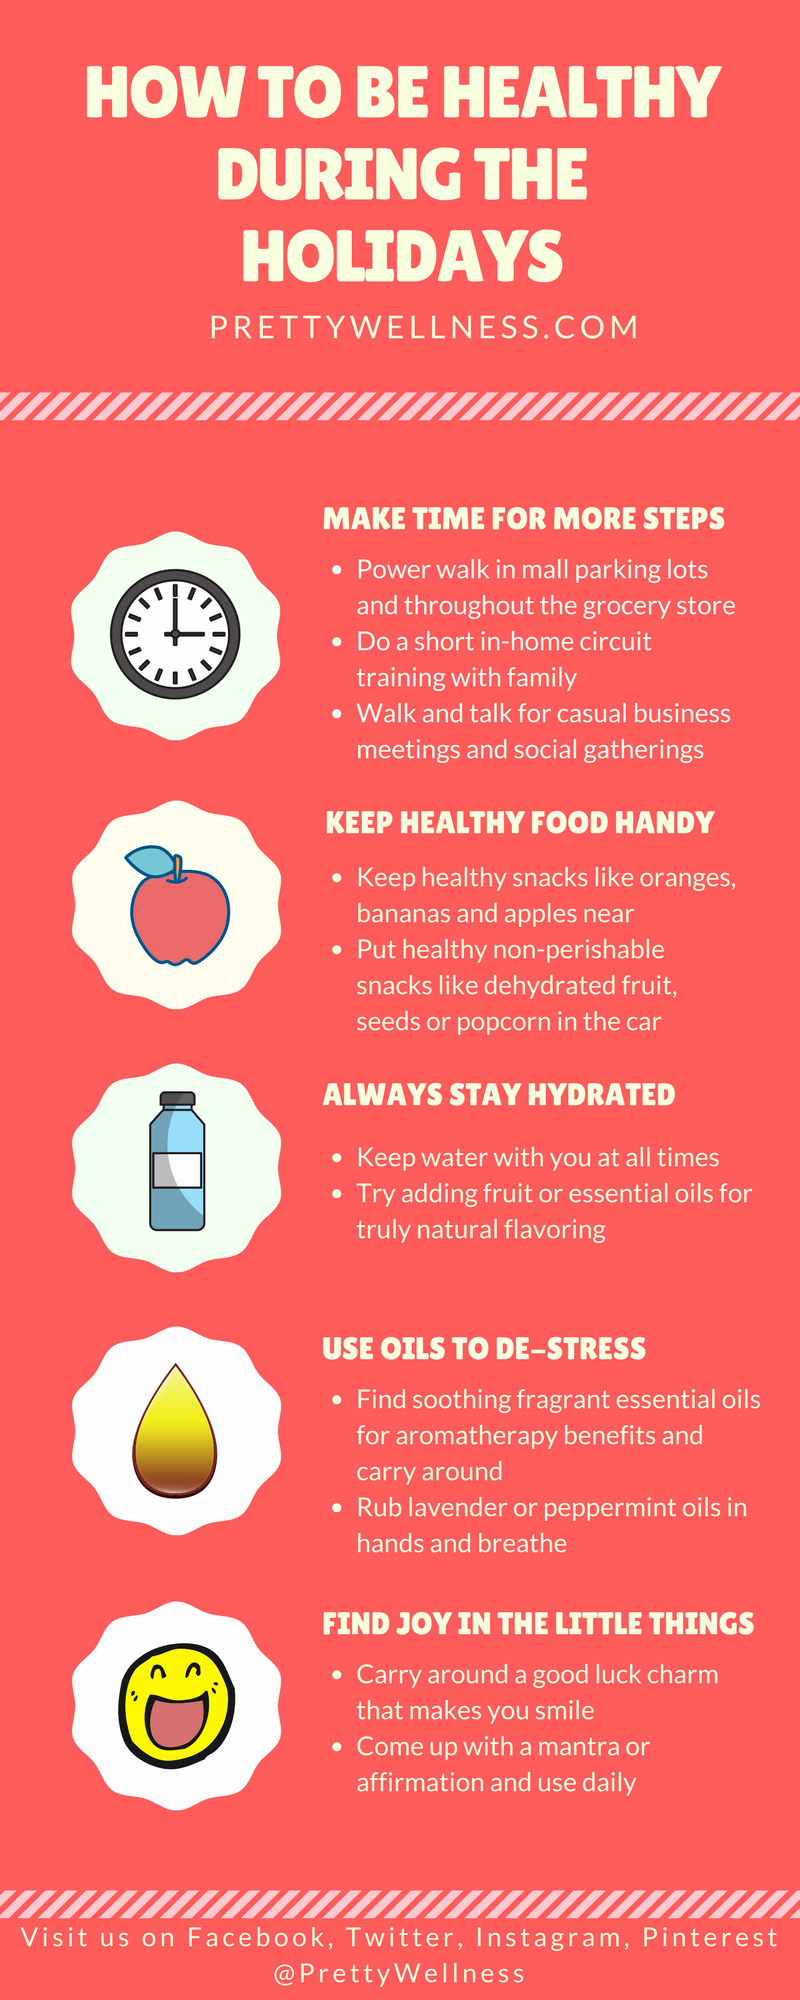 Holiday Stress Busters - How to Be Healthy During the Holidays